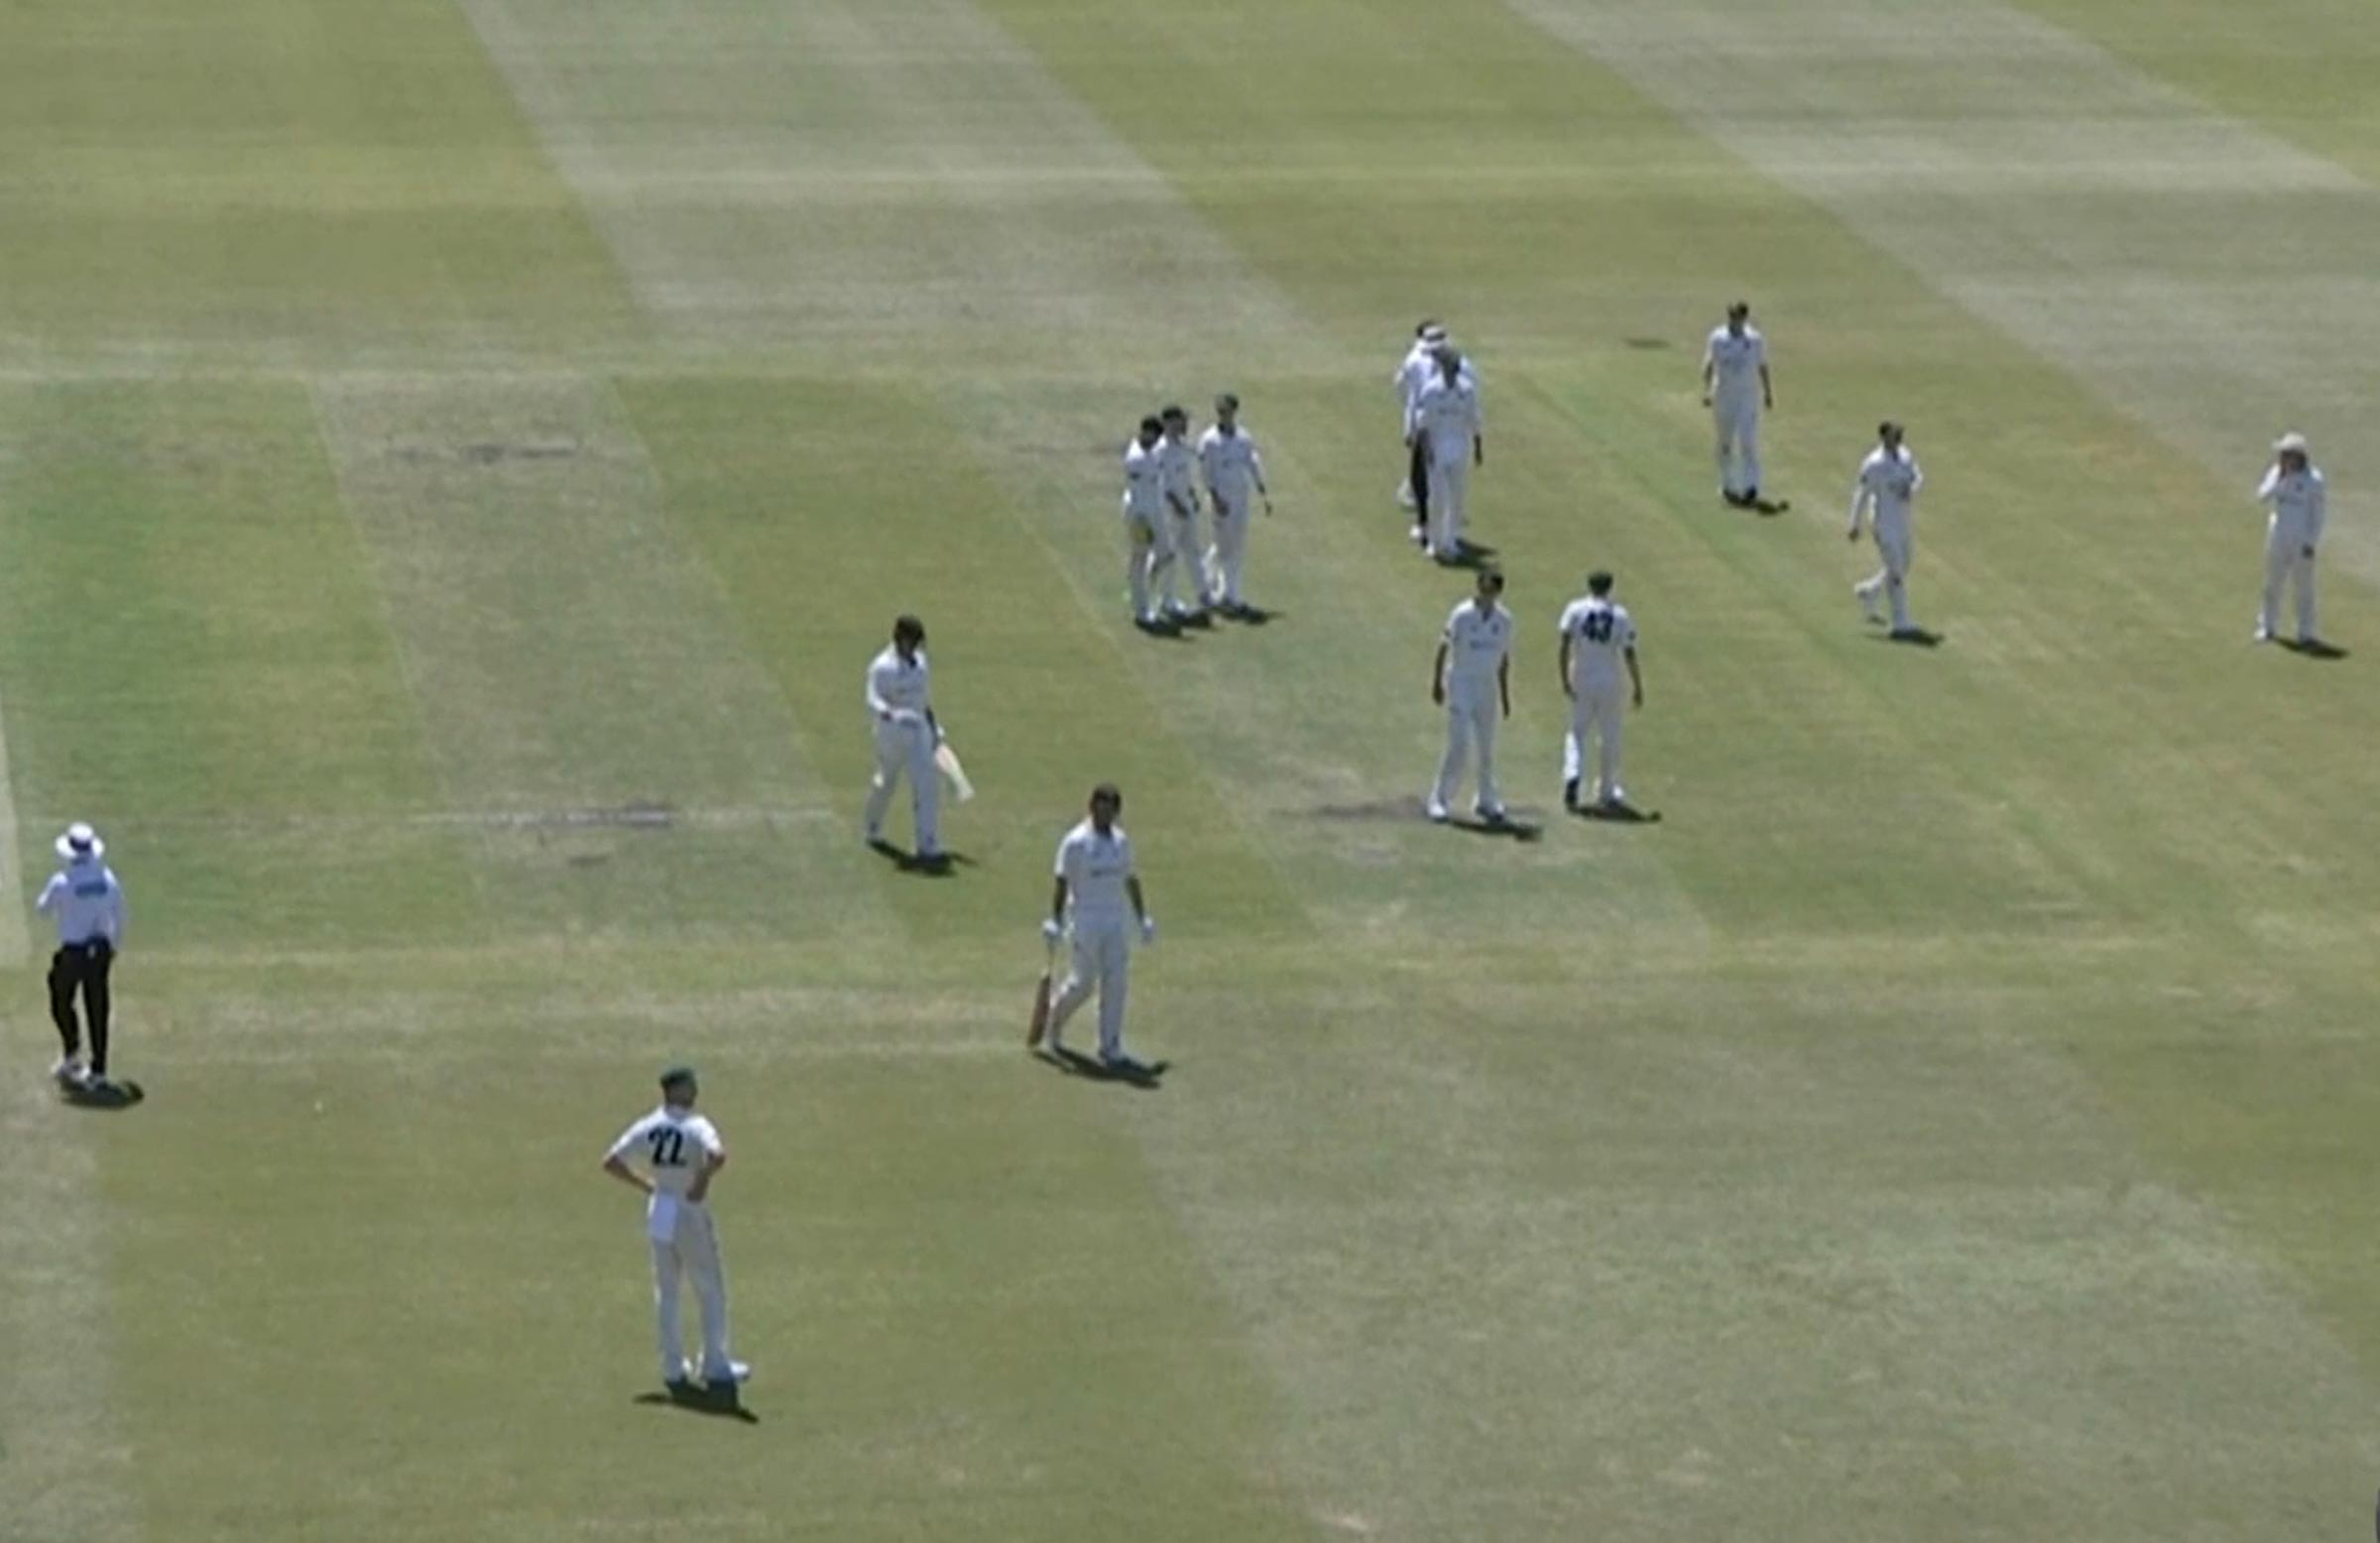 The players slowly walk from the ground